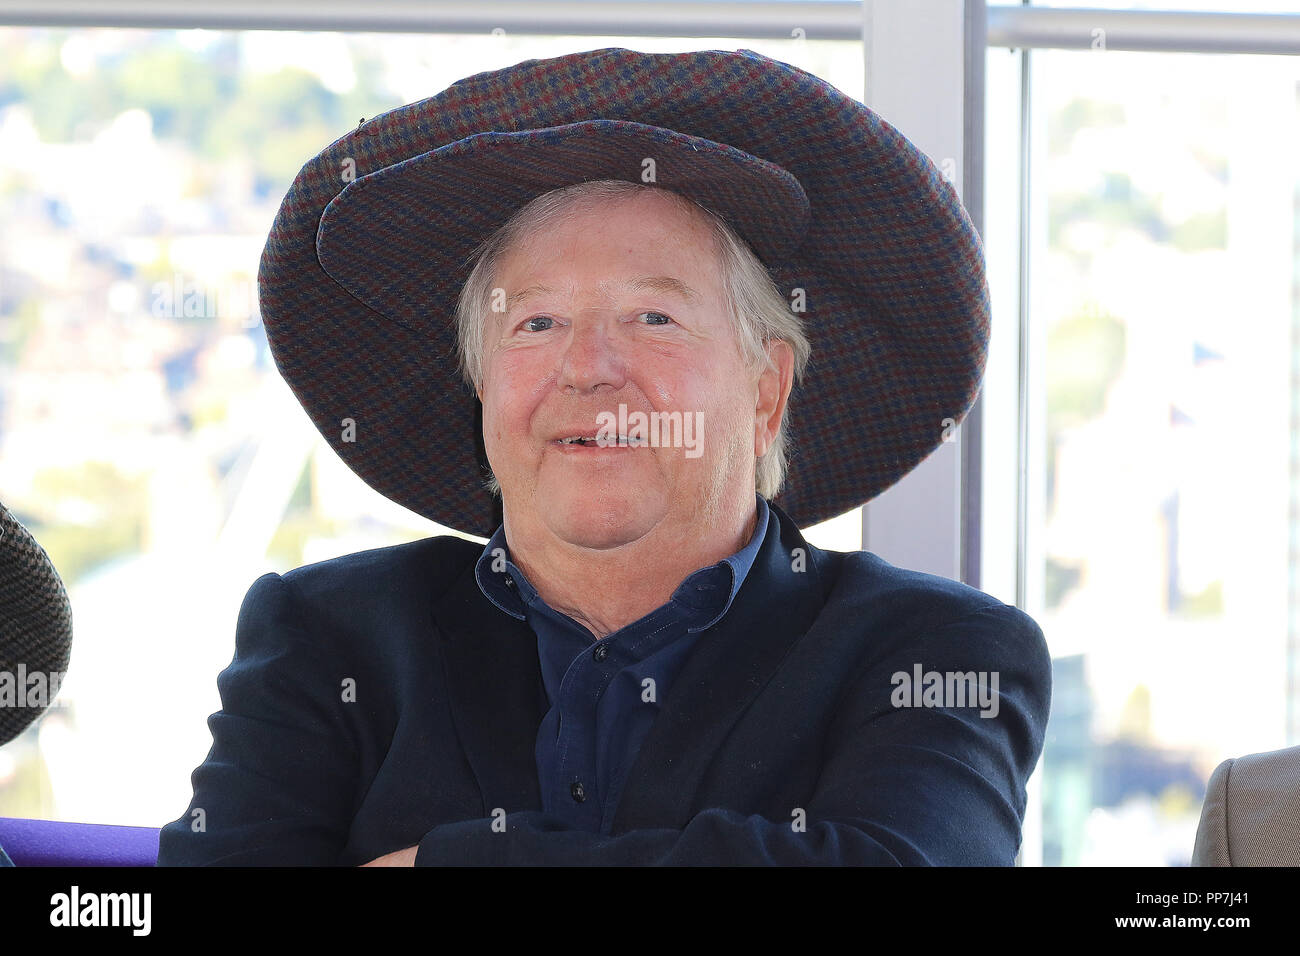 Tim Brooke-Taylor, The Goodies: The Complete BBC Collection - DVD Launch, BT Tower, London, UK, 24 September 2018, Photo by Richard Goldschmidt Credit: Rich Gold/Alamy Live News - Stock Image